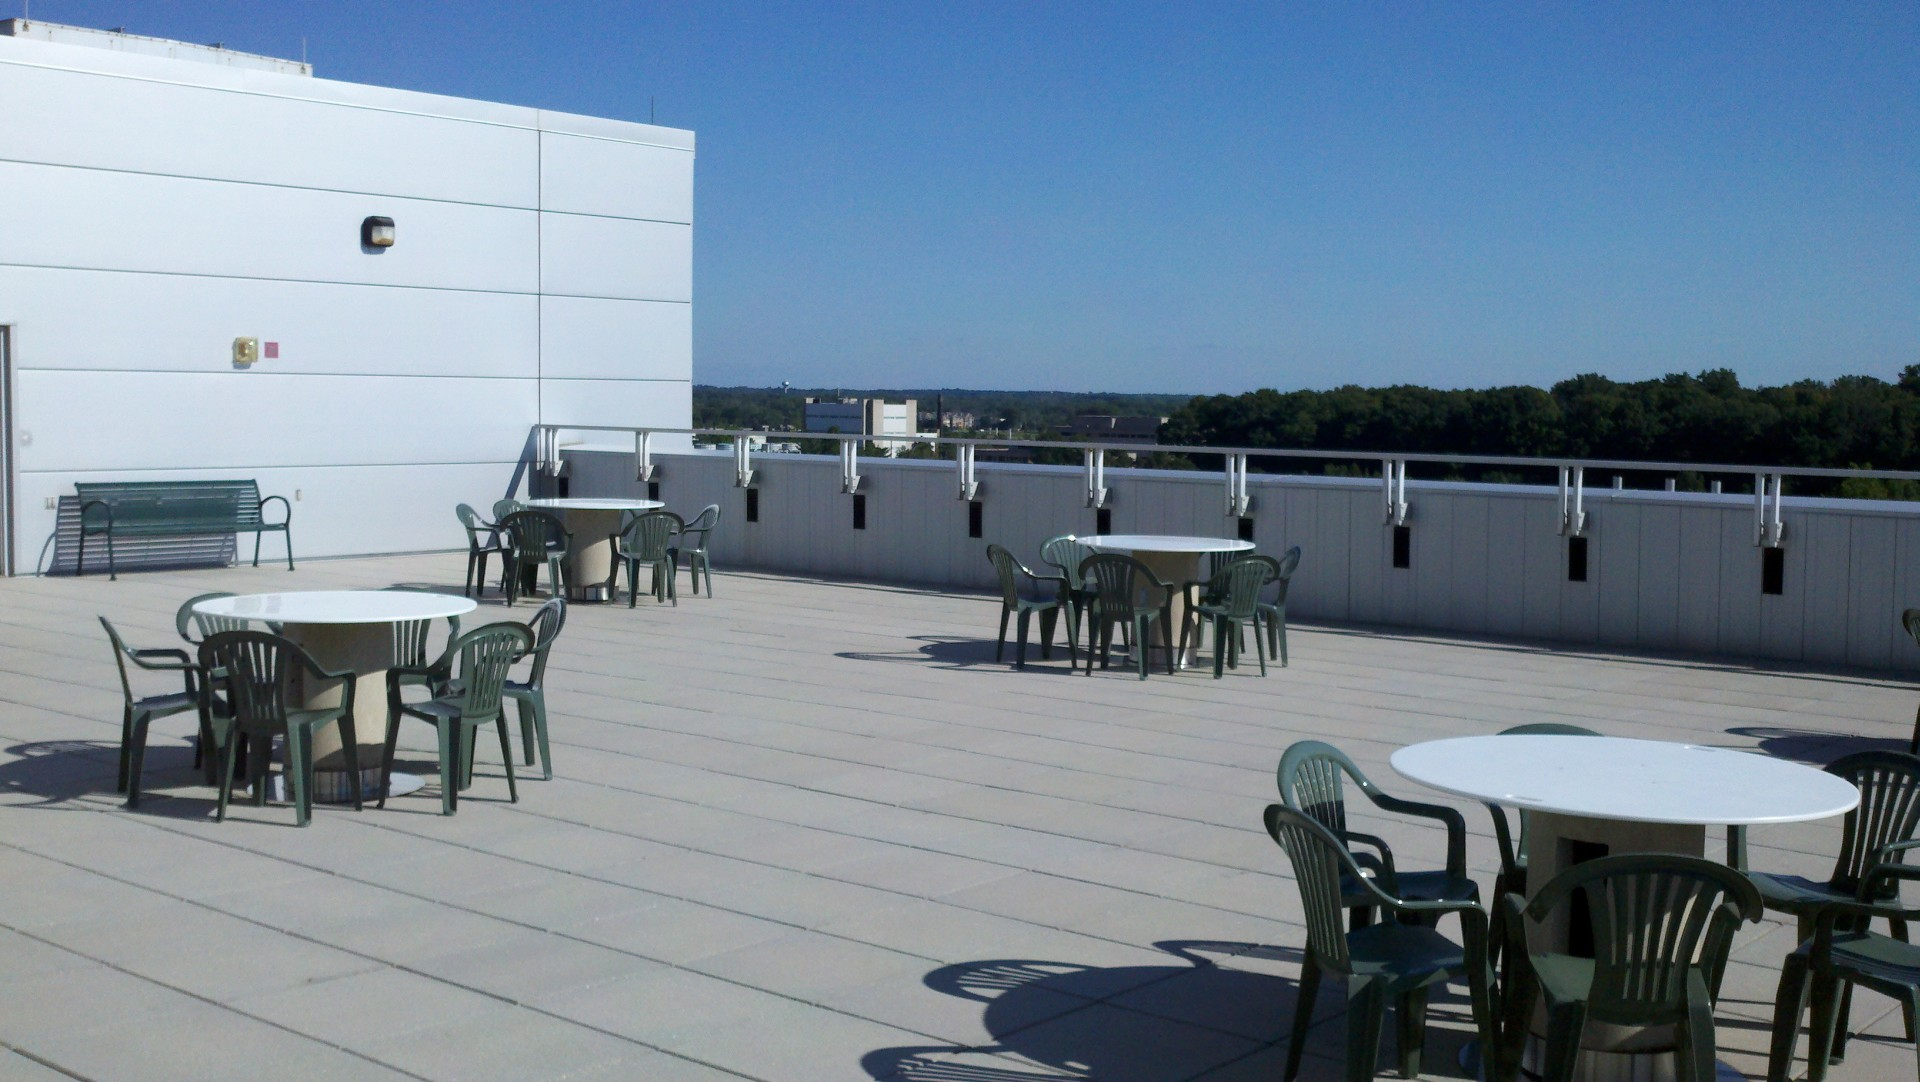 BPS Observation Deck